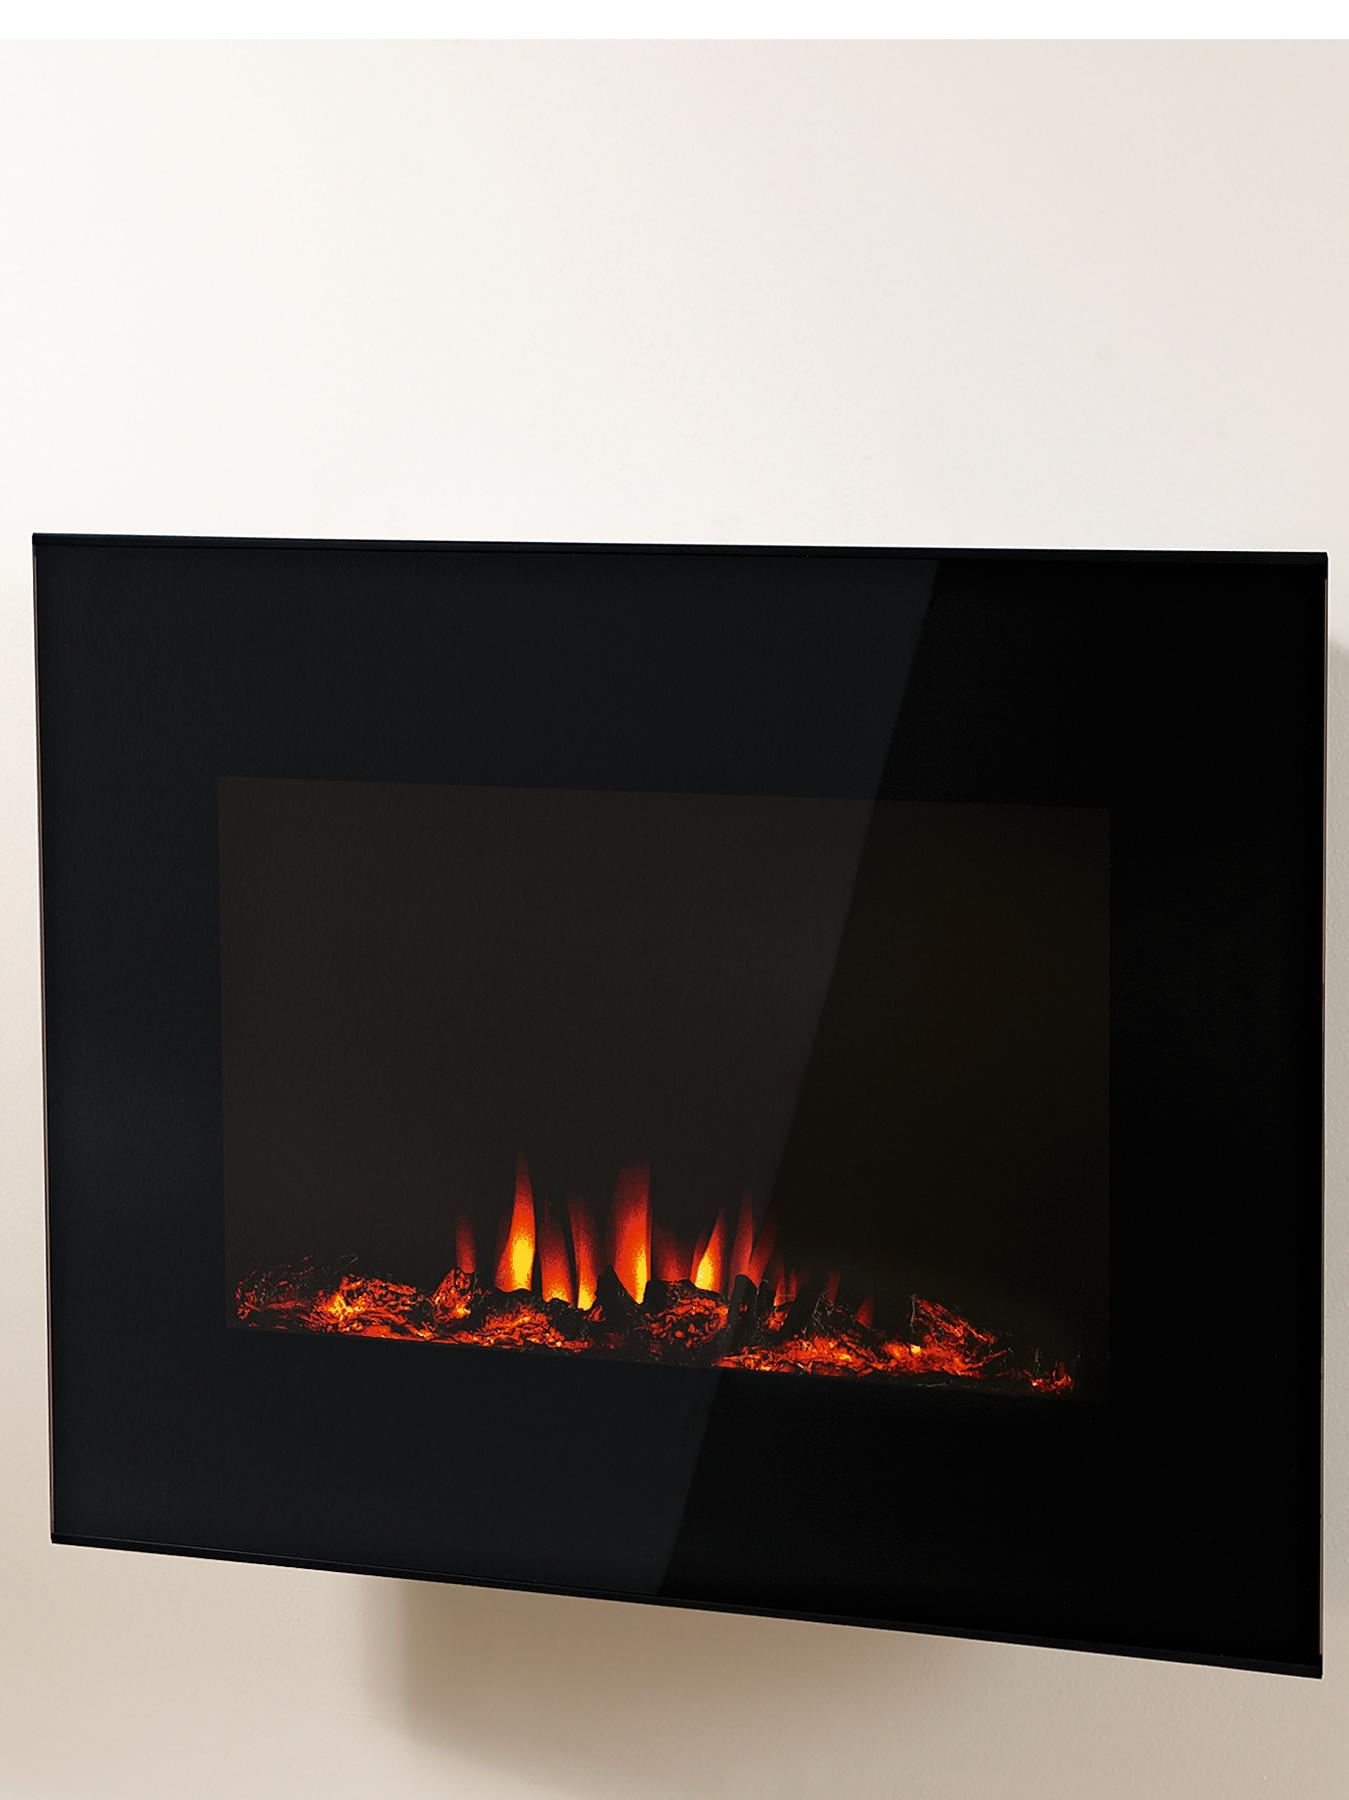 SH2040 Wall Mounted Electric Fire